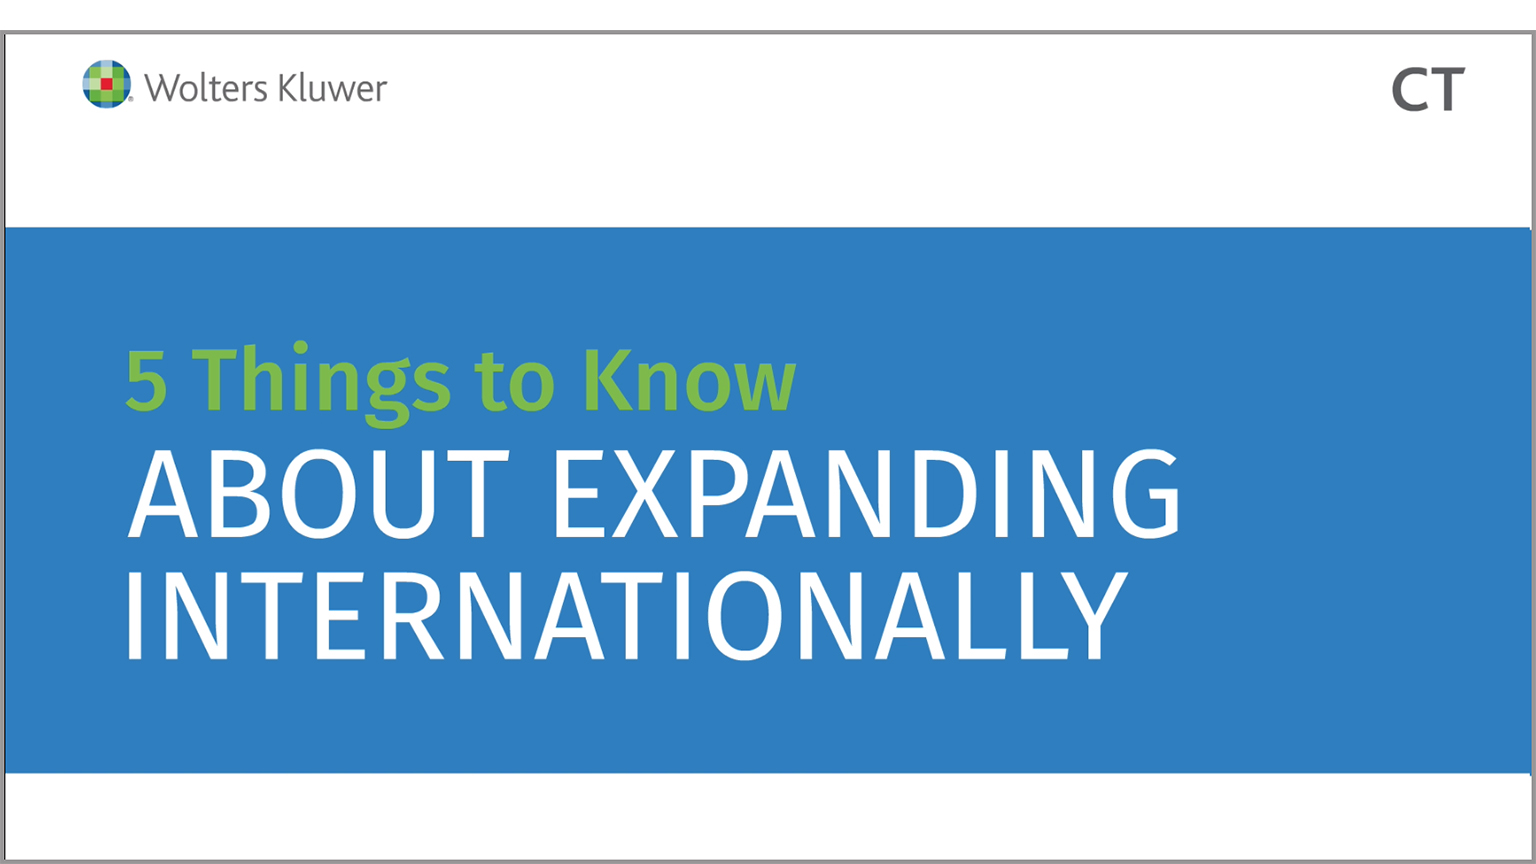 Five Things to Know About Expanding Internationally